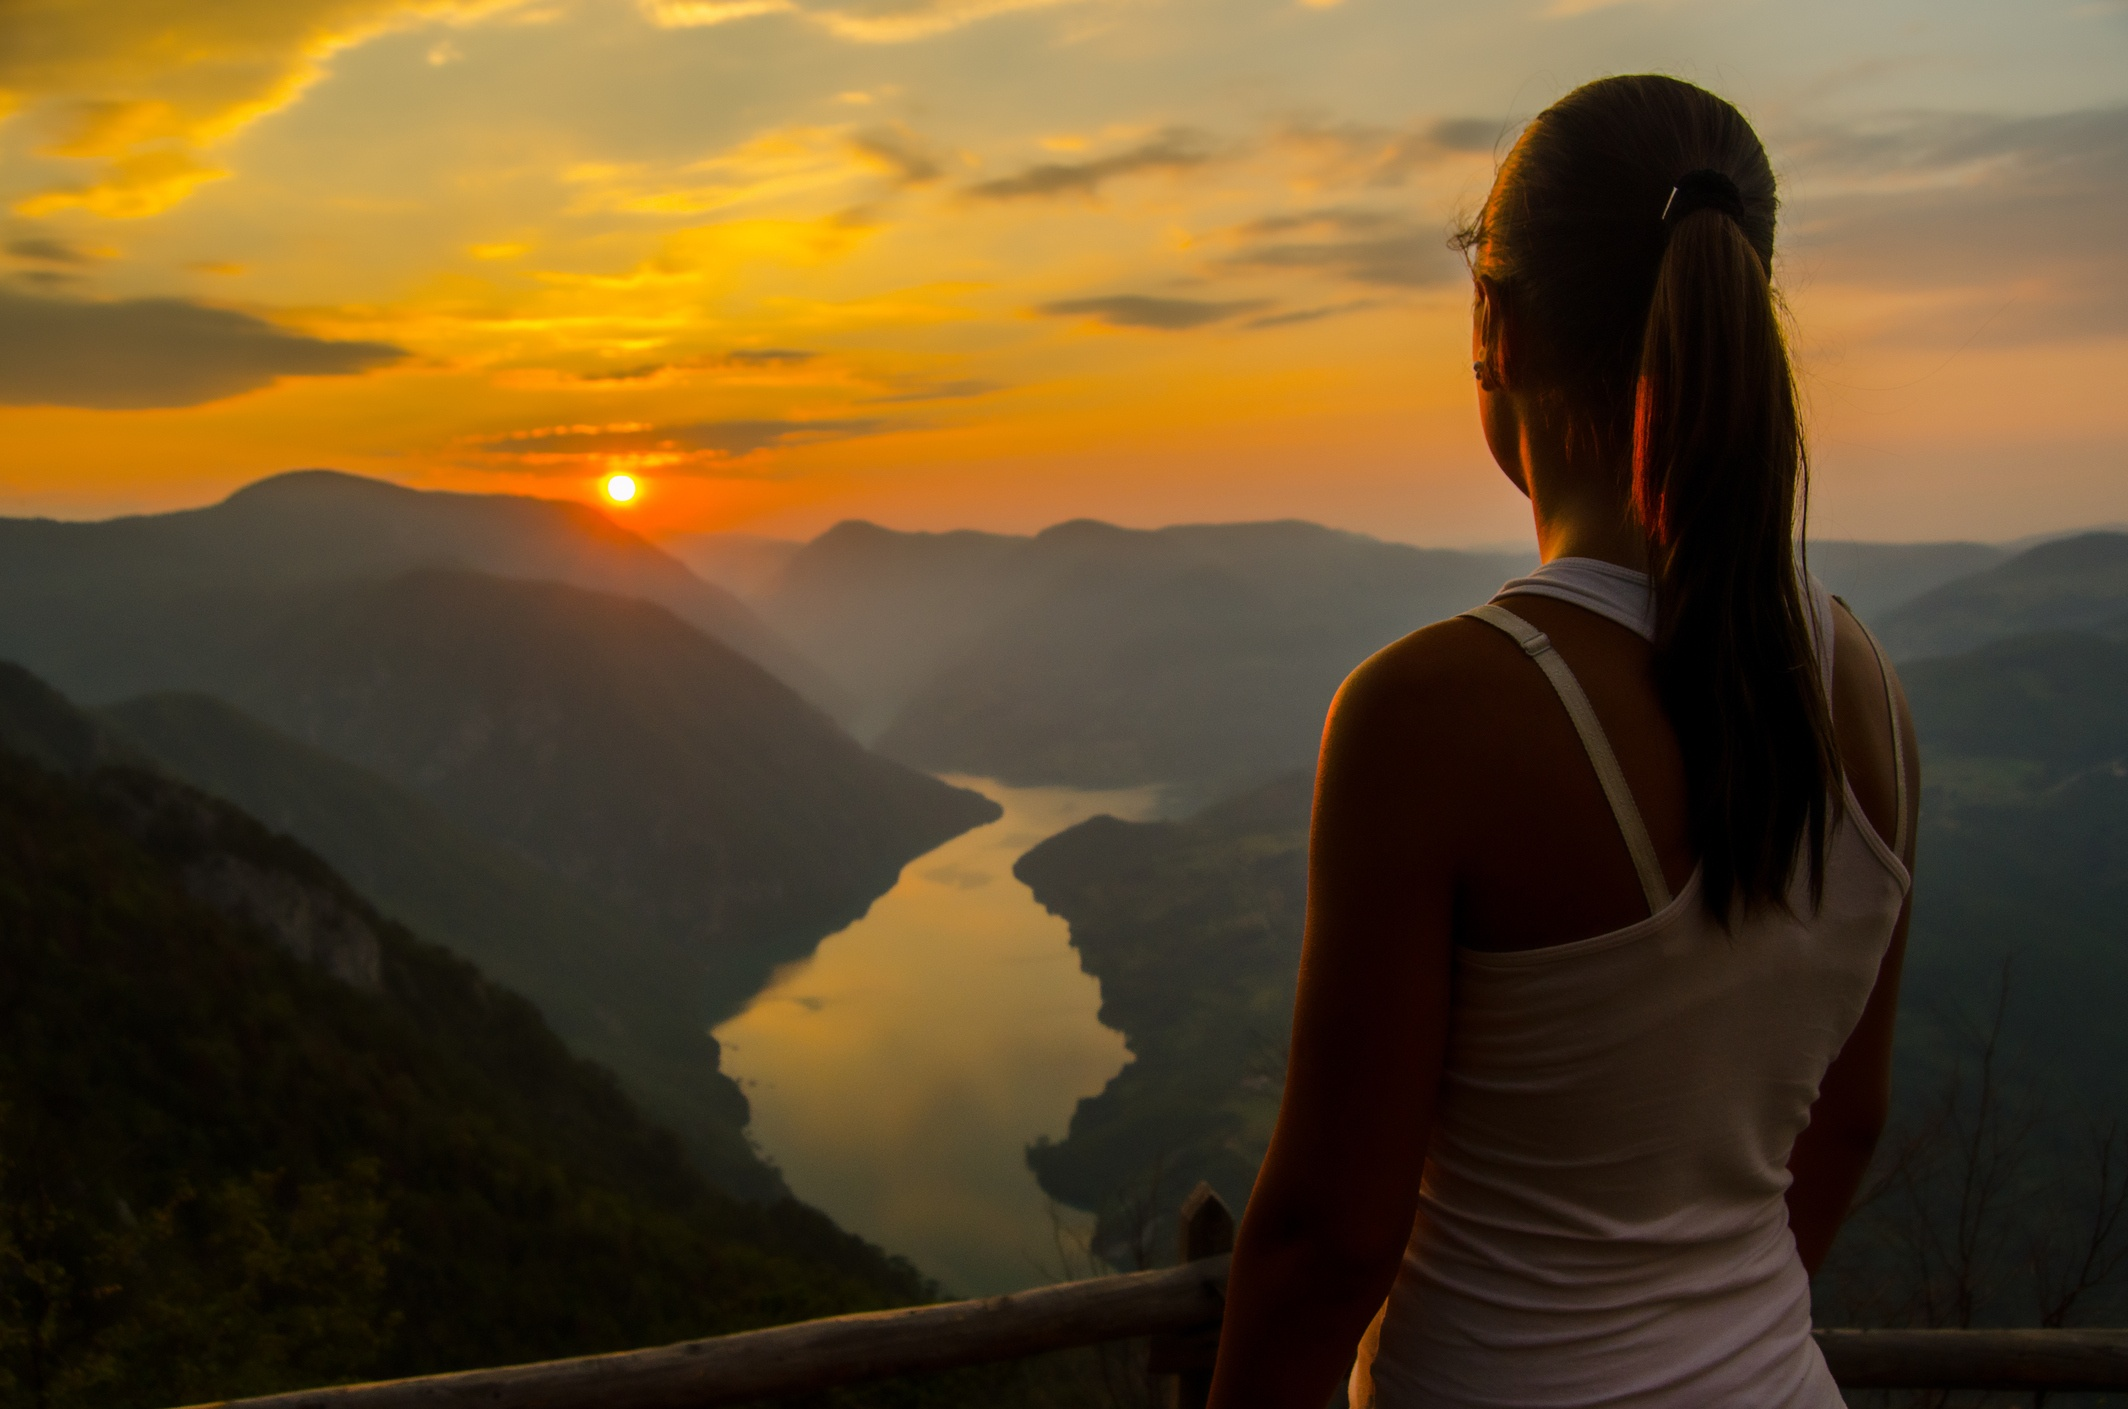 Girl watching the sunset at the top of the mountain